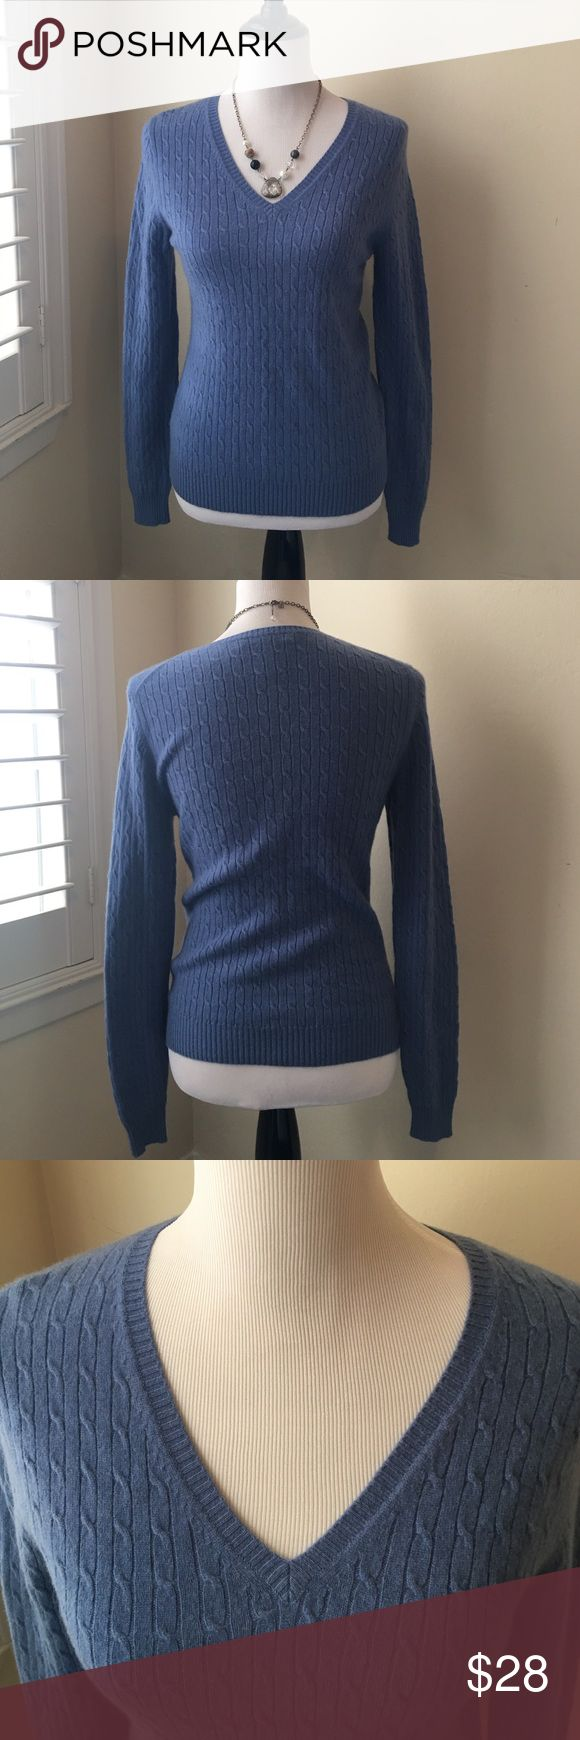 🎉New Listing🎉Cashmere V Neck Sweater / Large 100% Cashmere Marconi Size Large. Beautiful blue color 💙 Long sleeve, Cable Knit, V Neck Sweater. Excellent Condition. Marconi Sweaters V-Necks